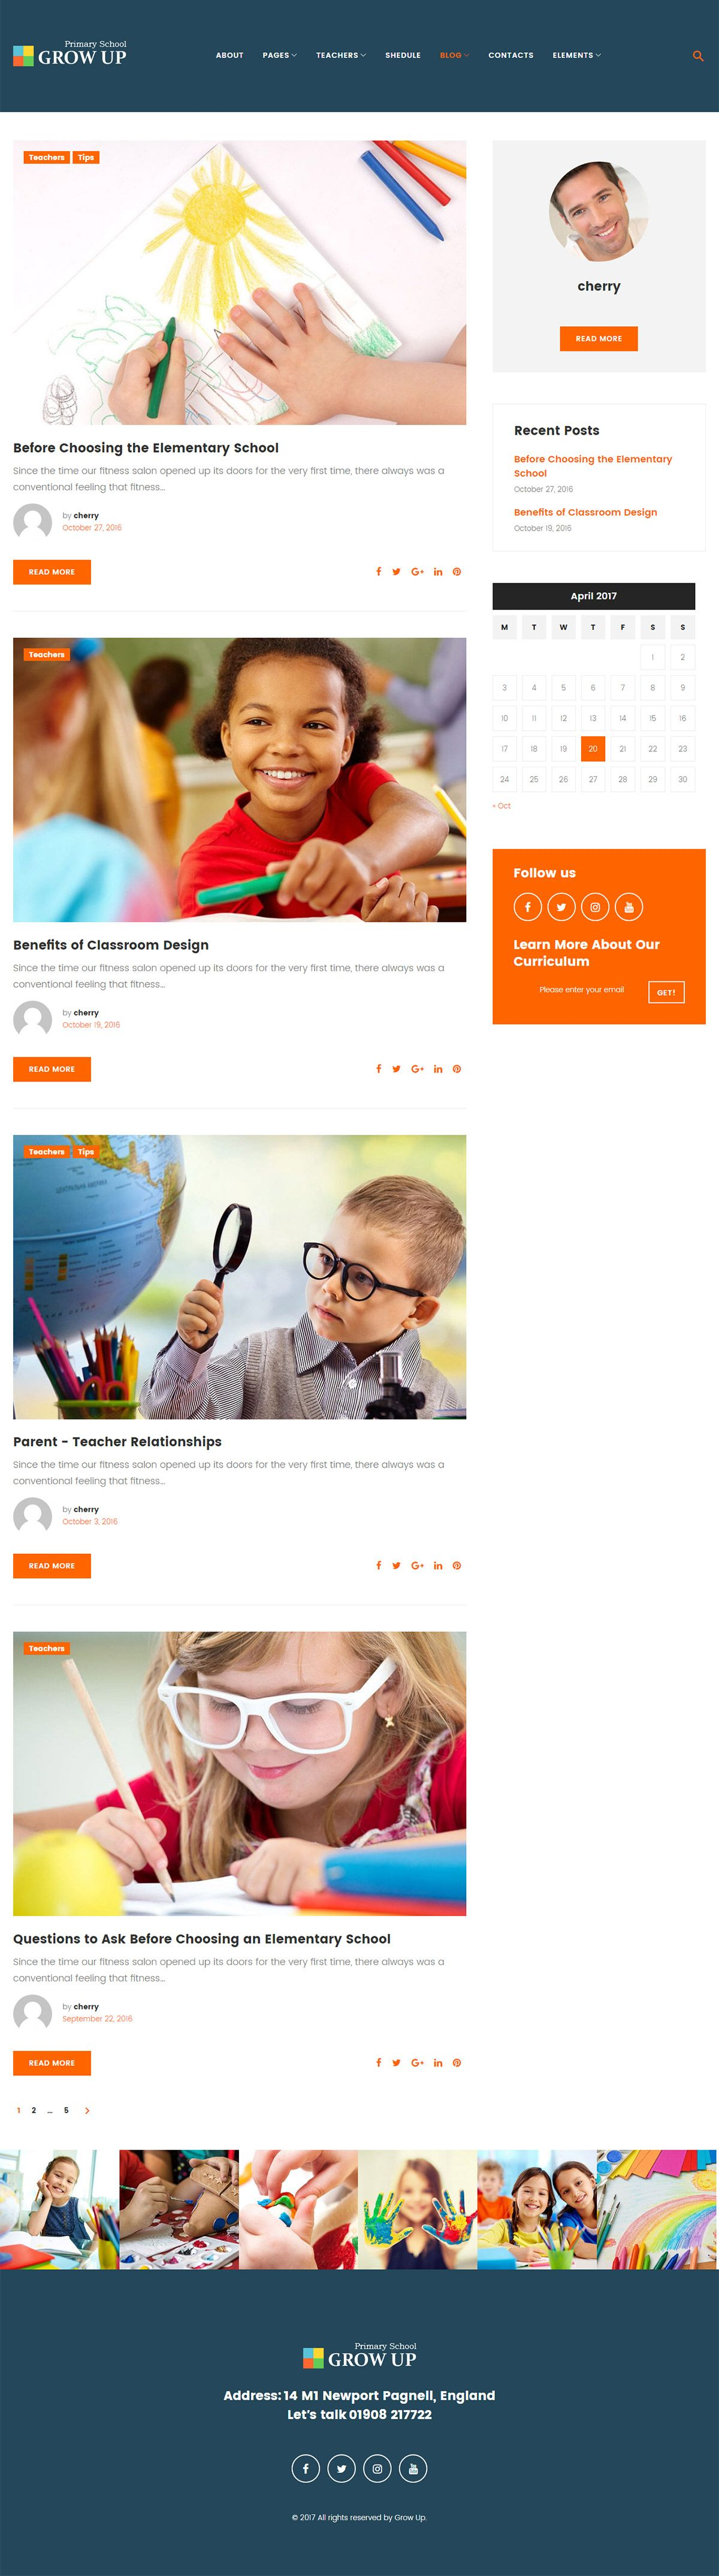 Grow Up Primary School WordPress Theme Screenshot 3